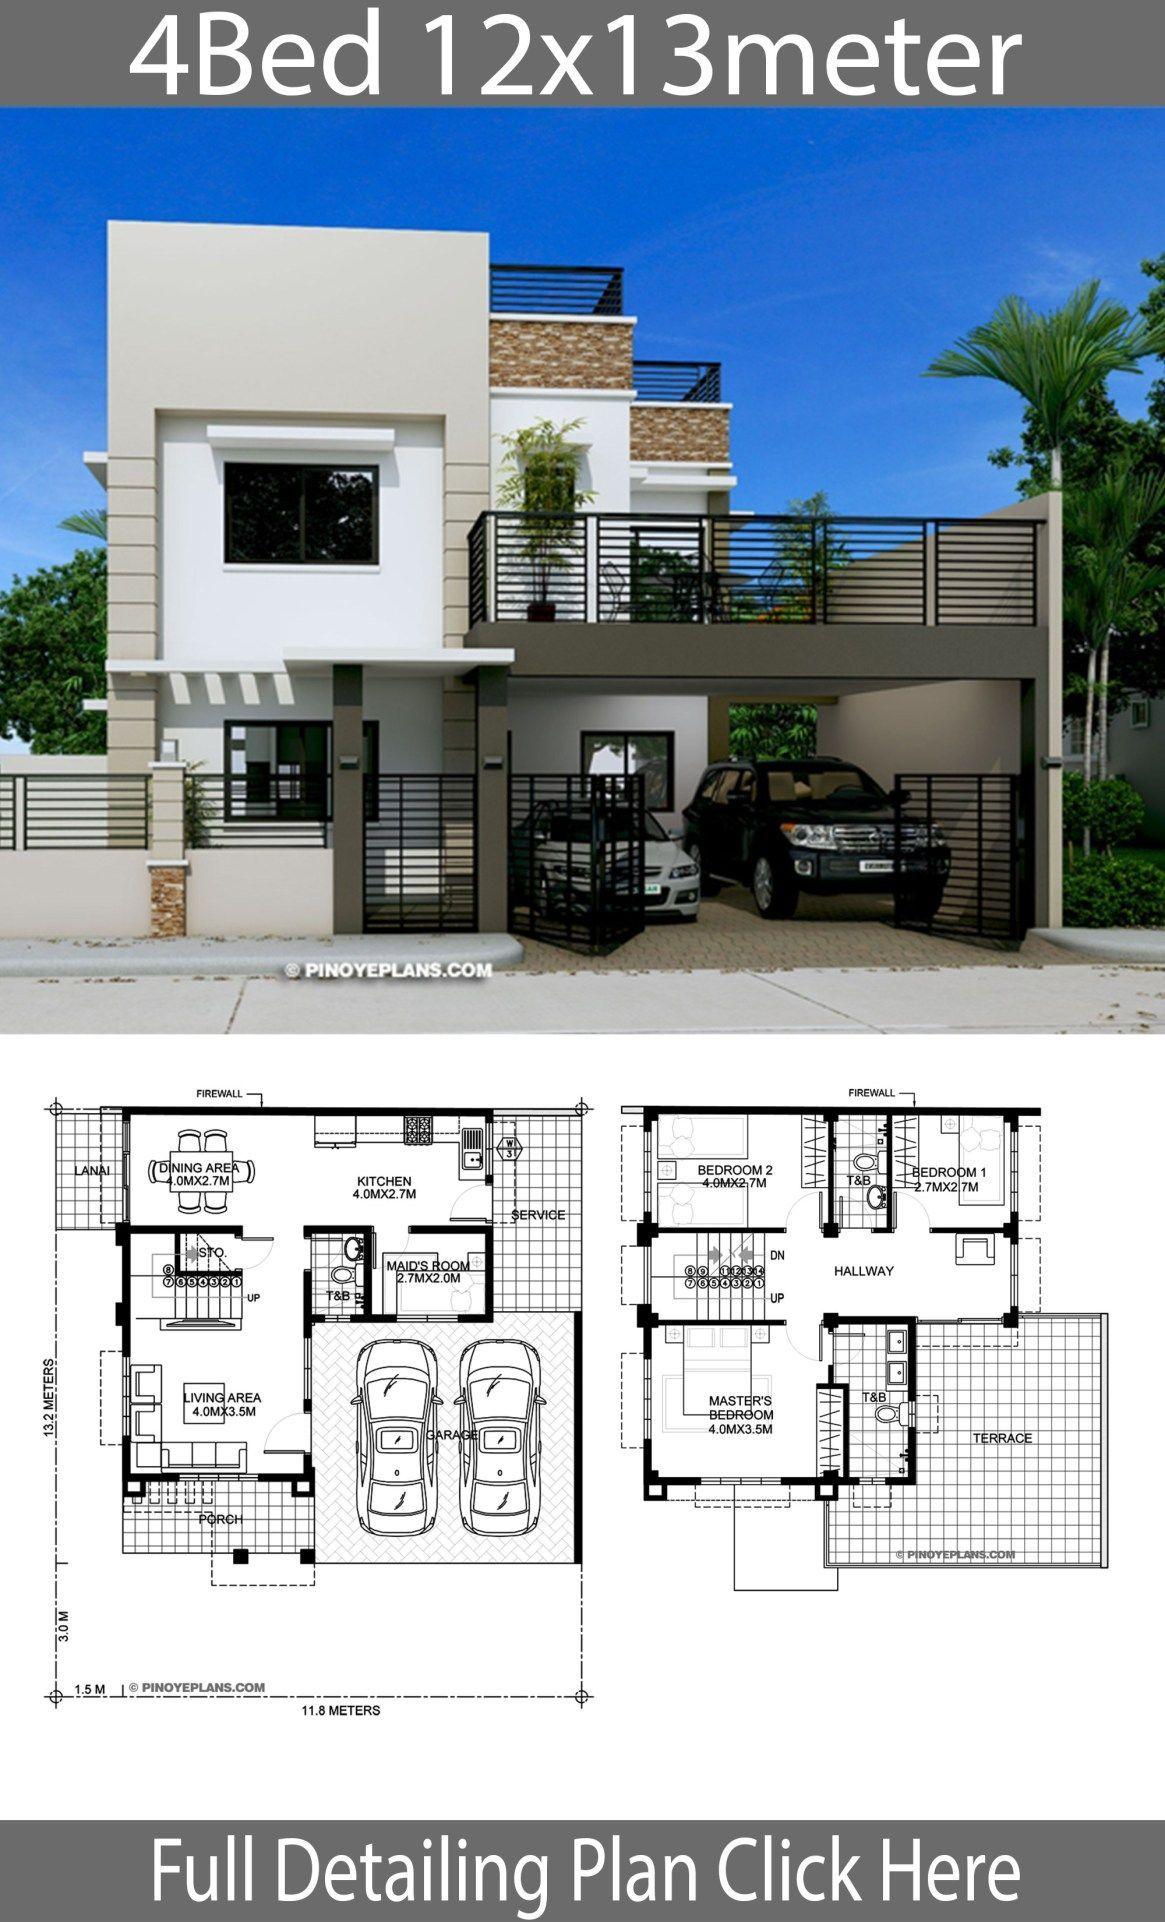 Home Design 12x13m With 4 Bedrooms Home Design With Plansearch In 2020 Duplex House Design Contemporary House Plans Modern House Plans